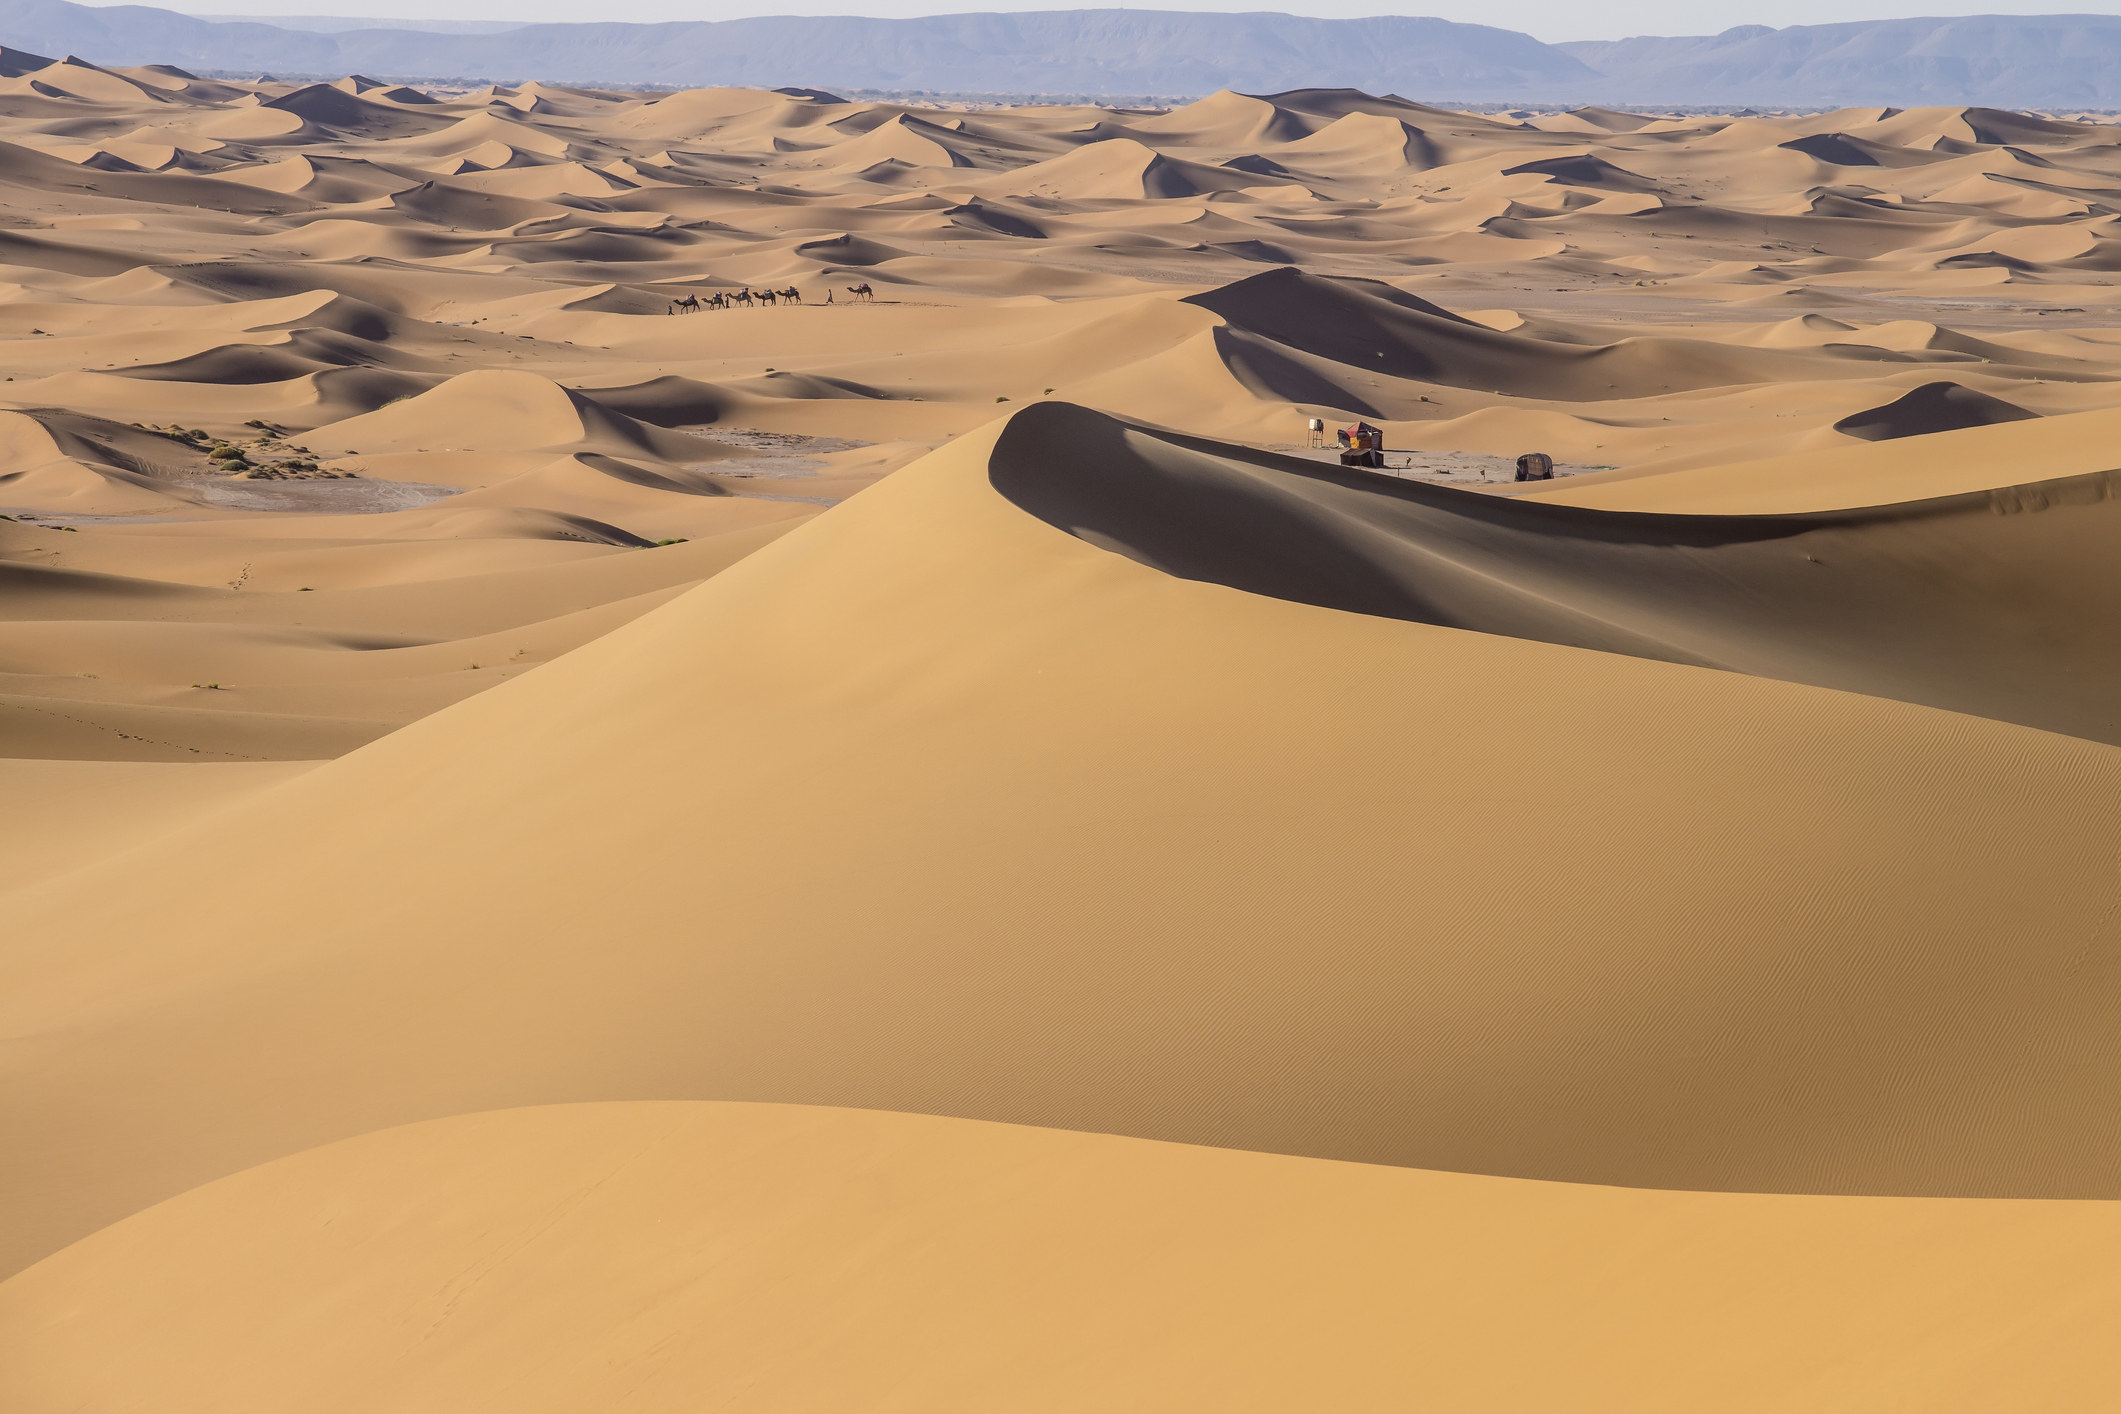 Open sandy desert with smooth dunes that go for miles